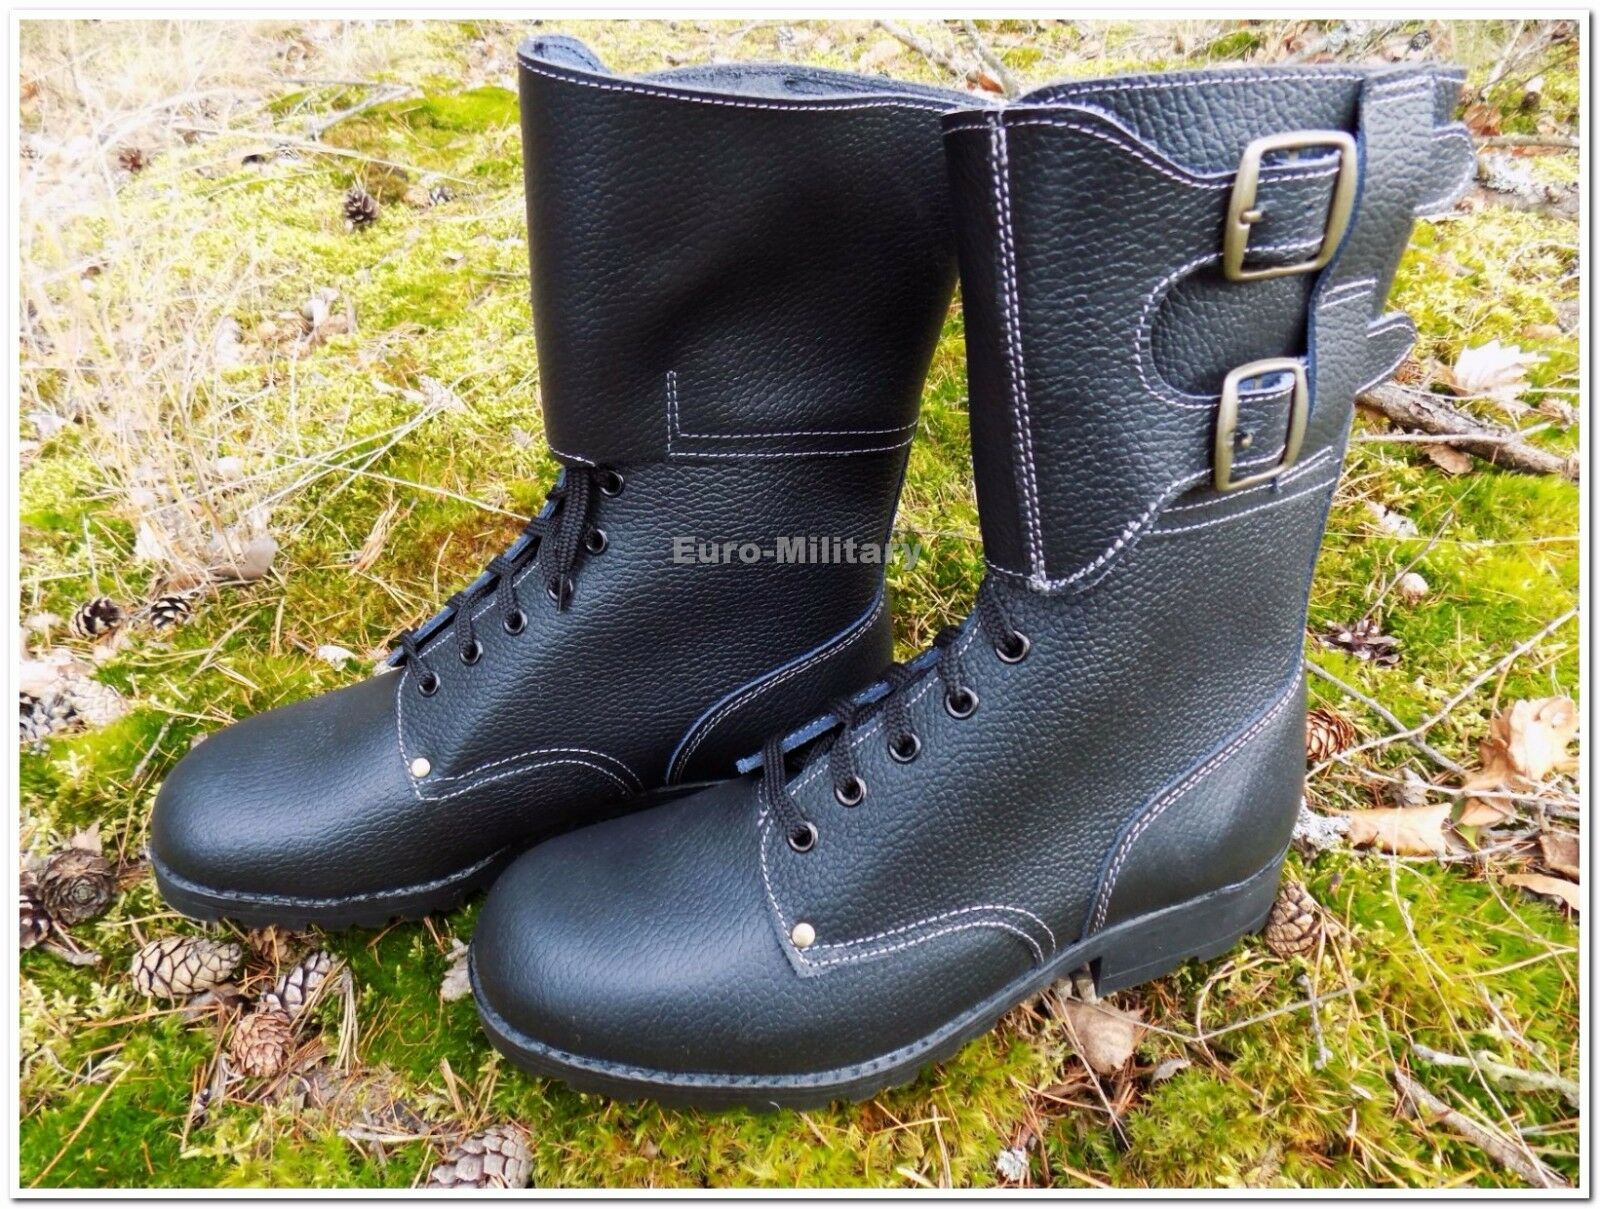 Tactical Military New Made Type VZ60,M60 Legendary CZ Boots - Brand New